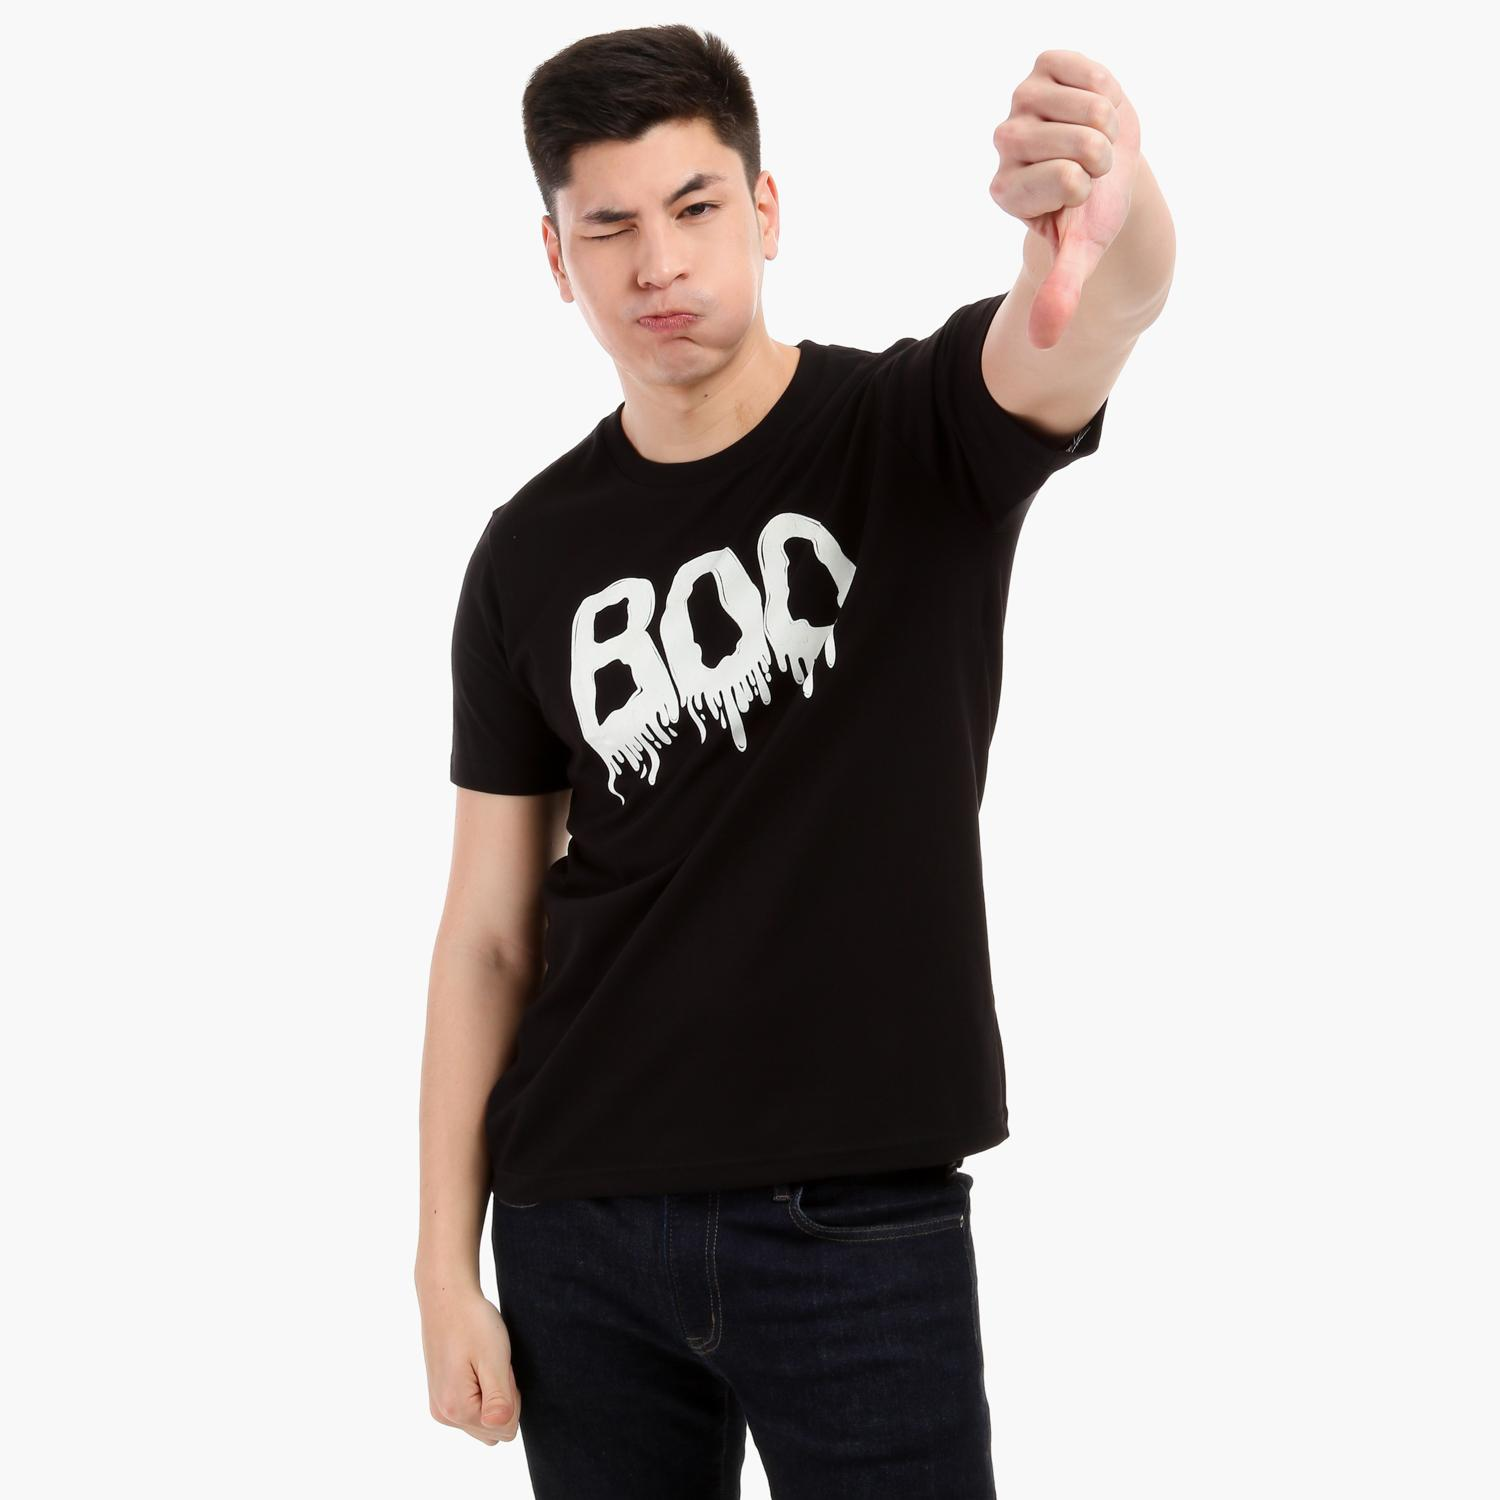 7b2d0c29 Tee Culture Philippines - Tee Culture T-Shirt Clothing for Men for ...